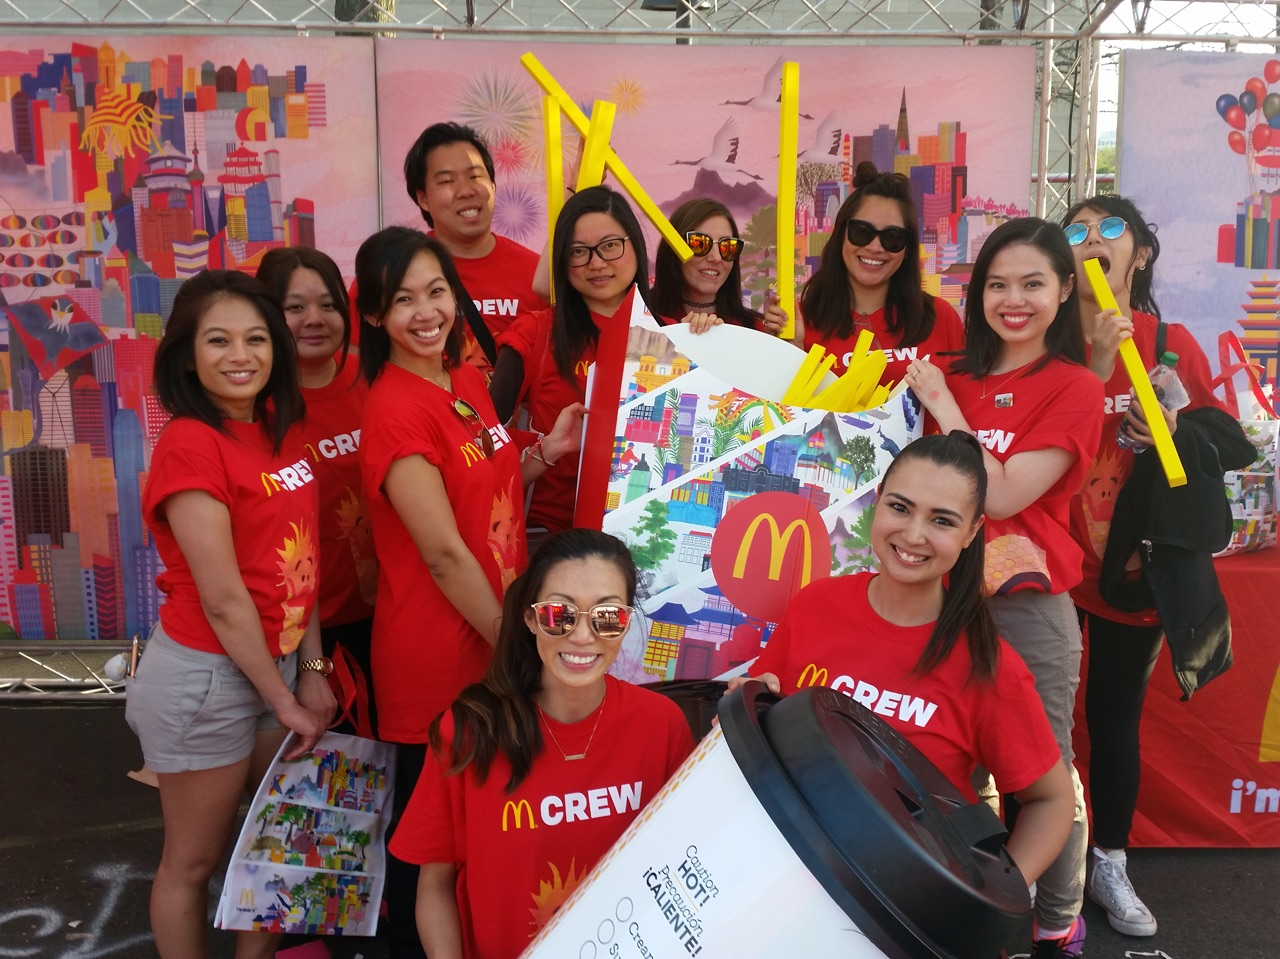 McDonald's Family Pavilion Event Staff